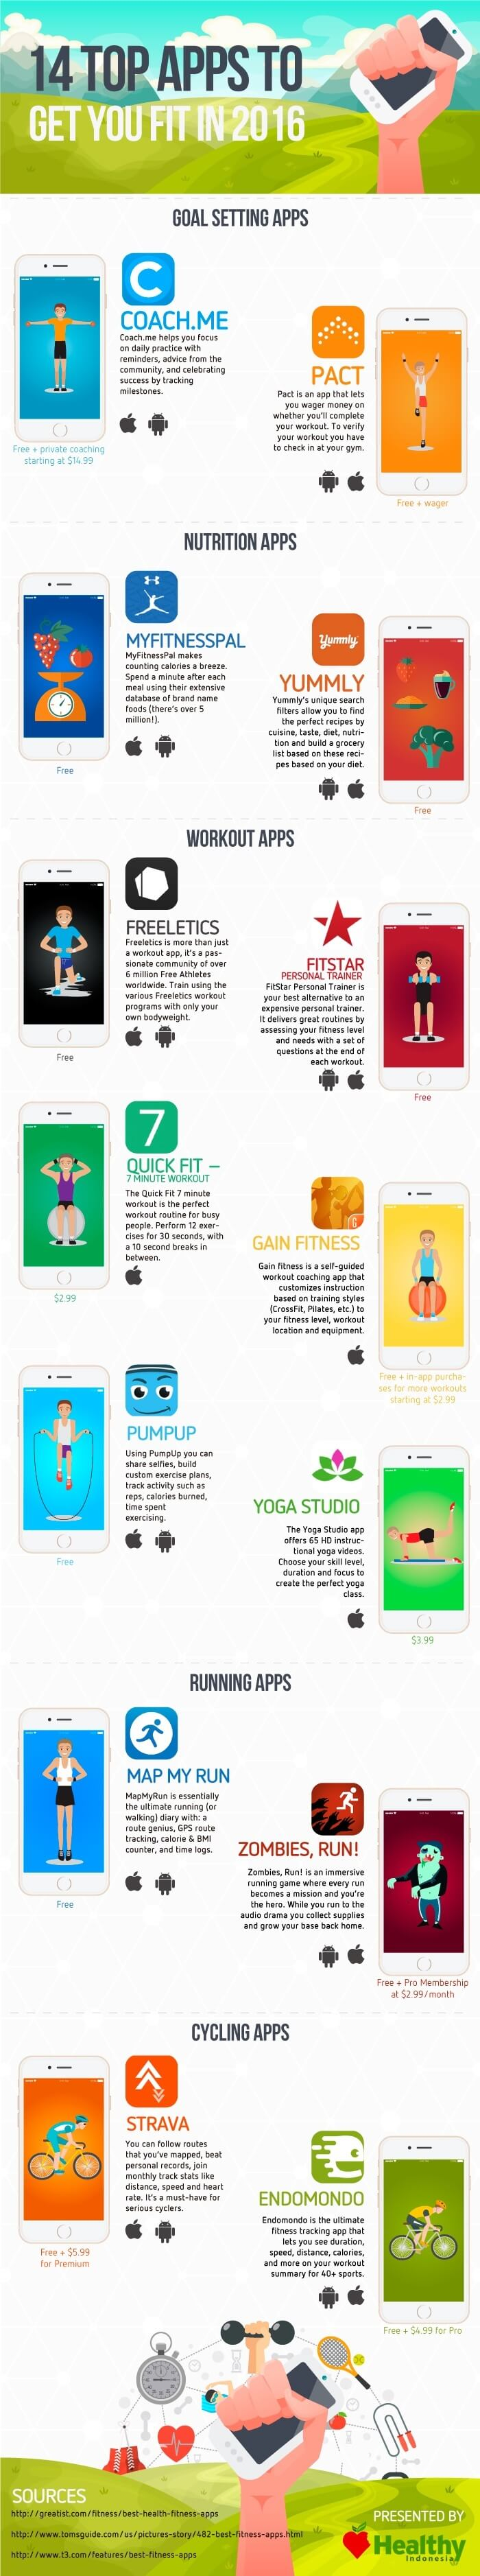 tips-to-get-in-shape-with-android-and-apple-fitness-apps-tips-tipsographic